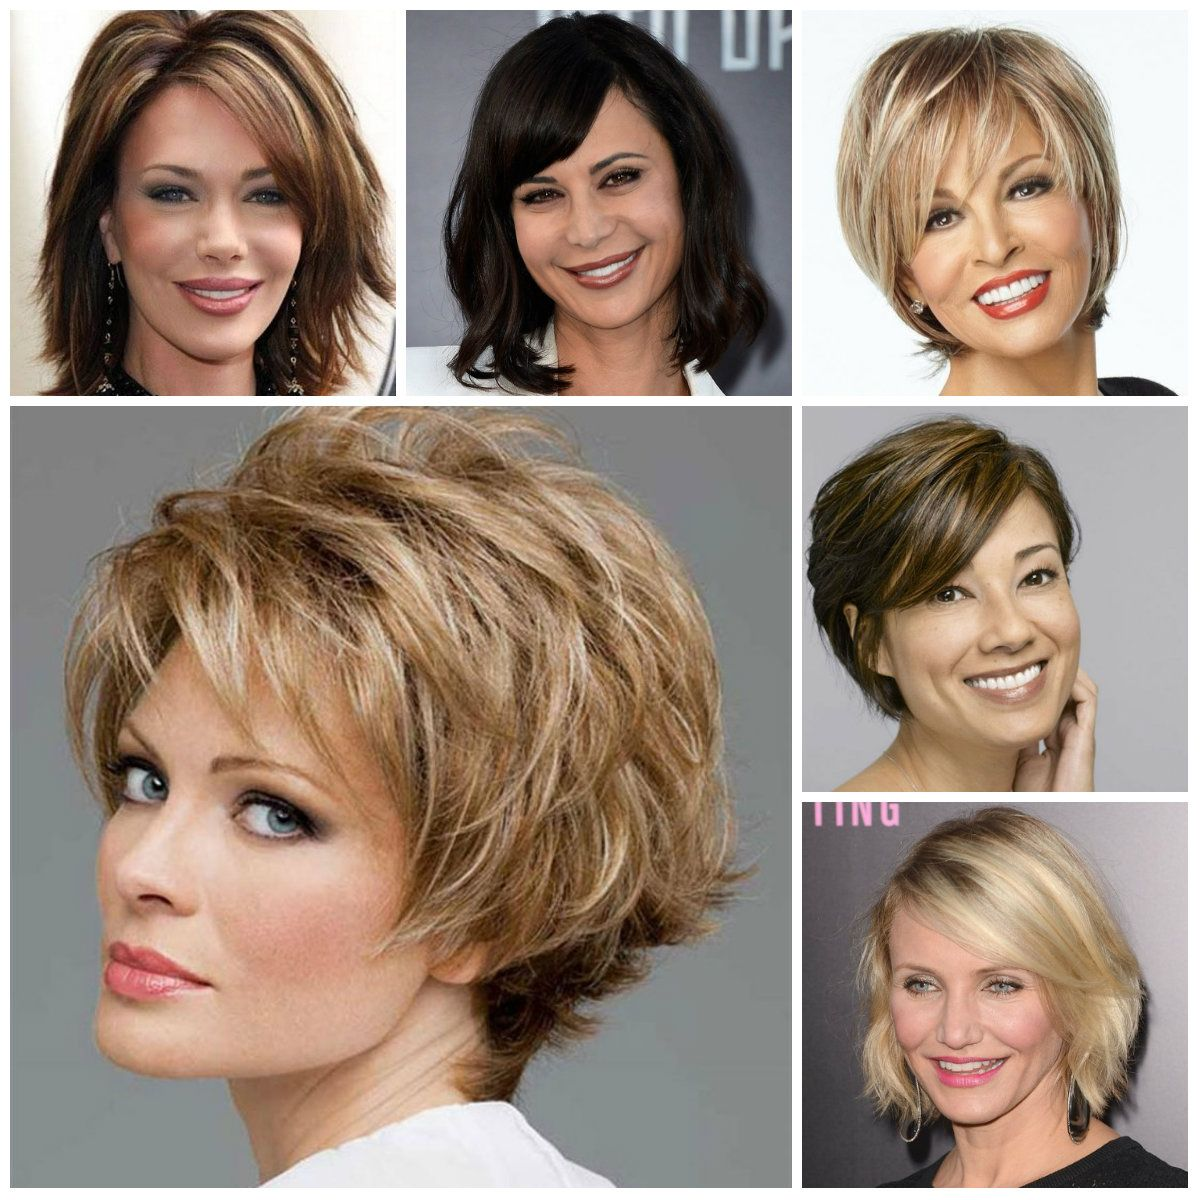 Refreshing The Haircut Is The Key Of Looking Stylish And More